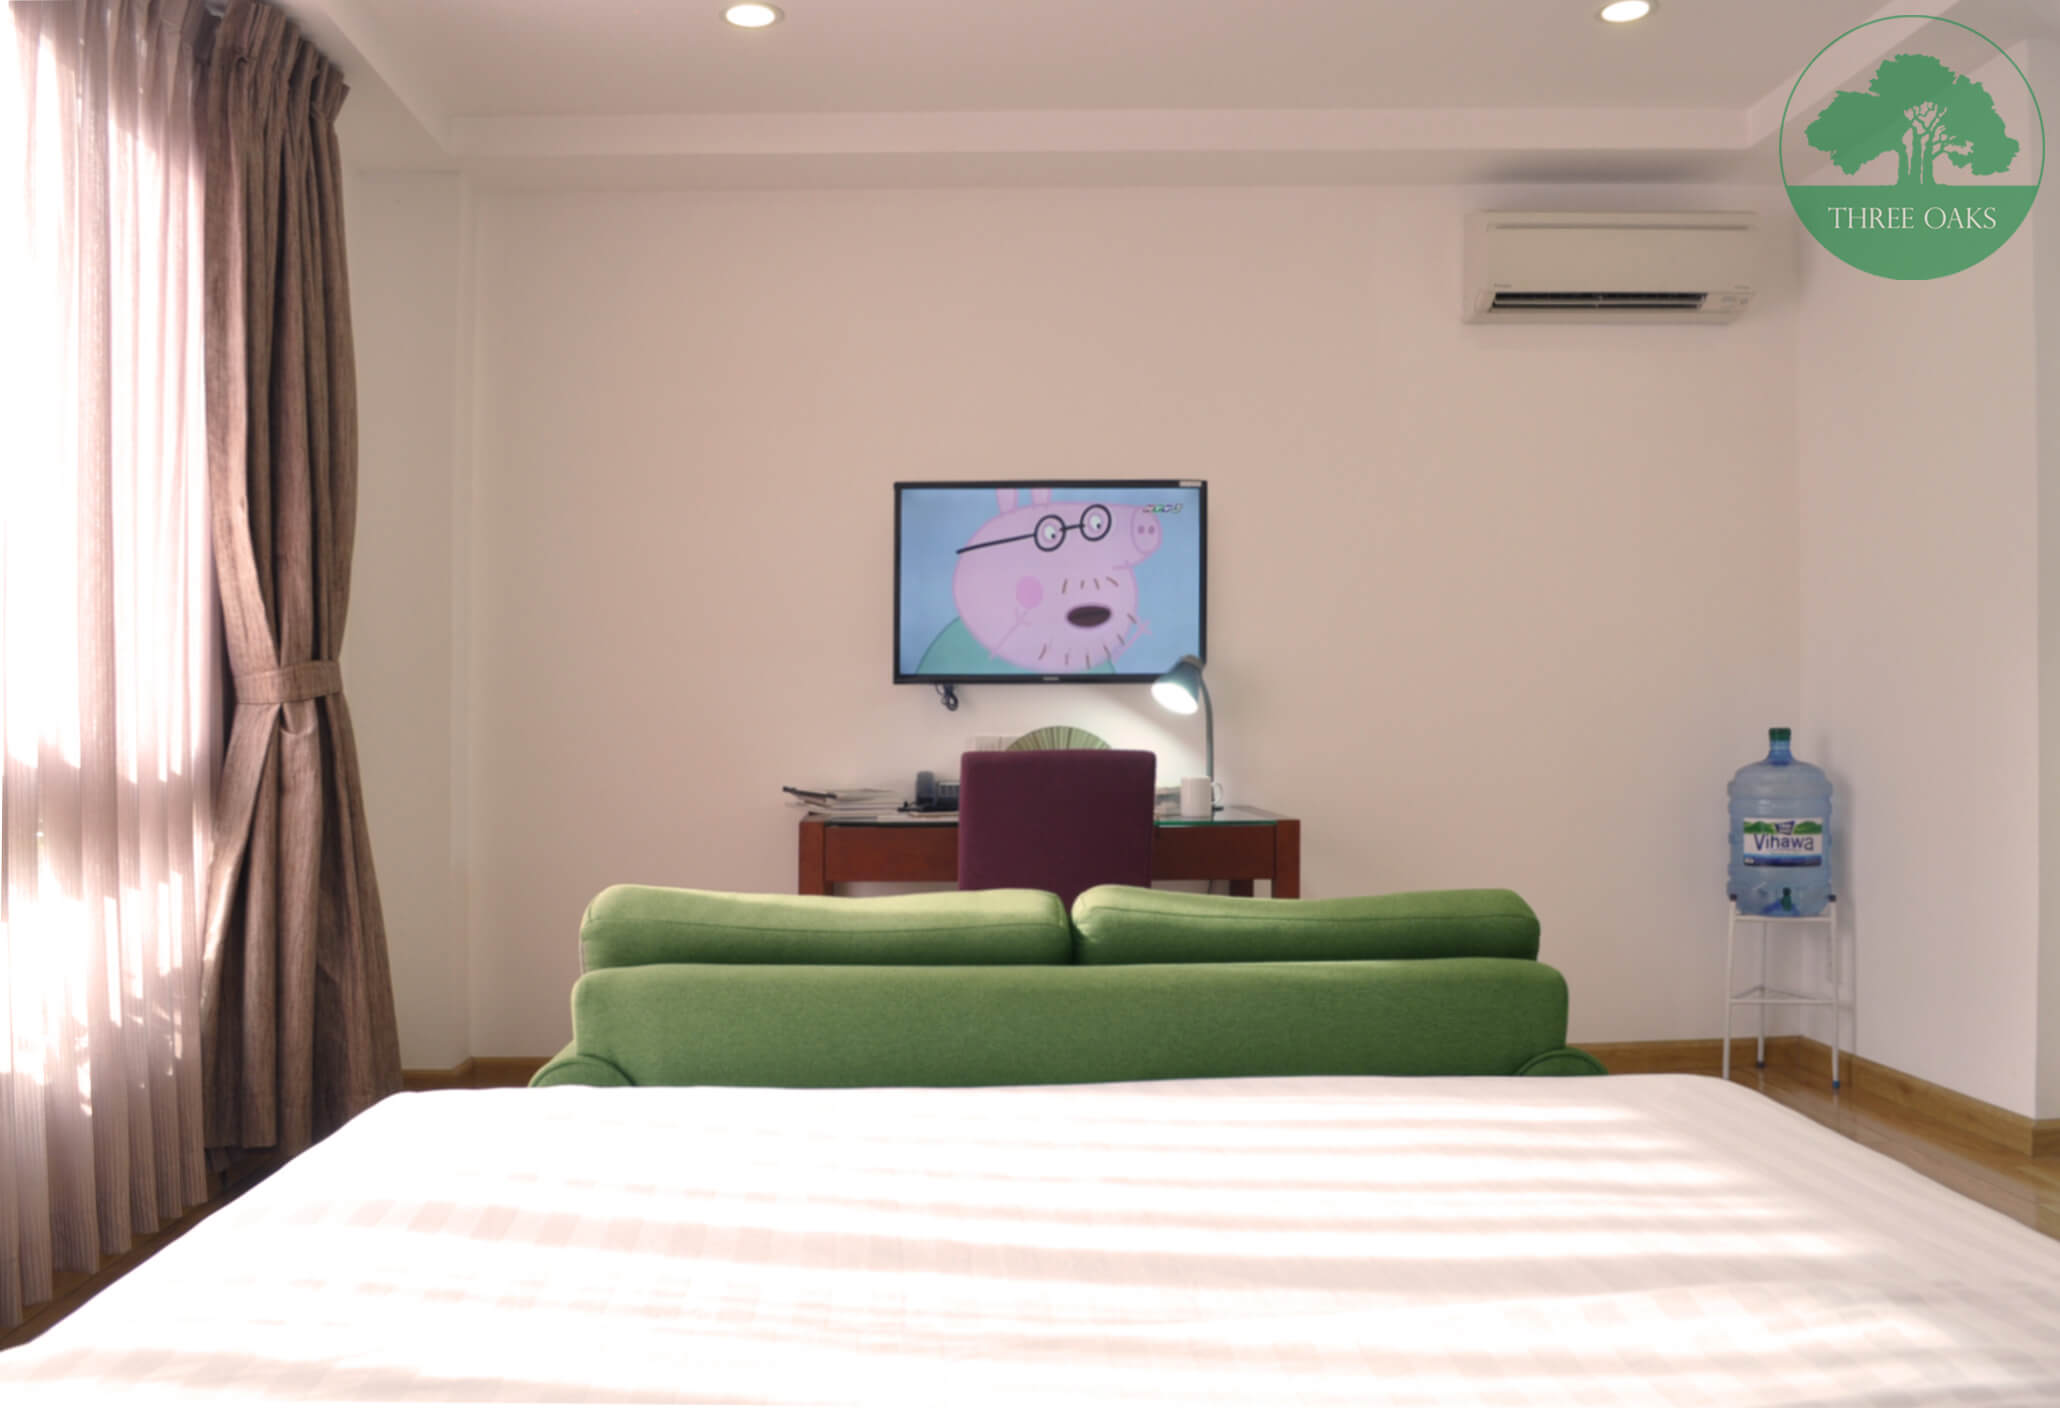 serviced-apartment-in-hcm-three-oaks-2-tybe-a-37